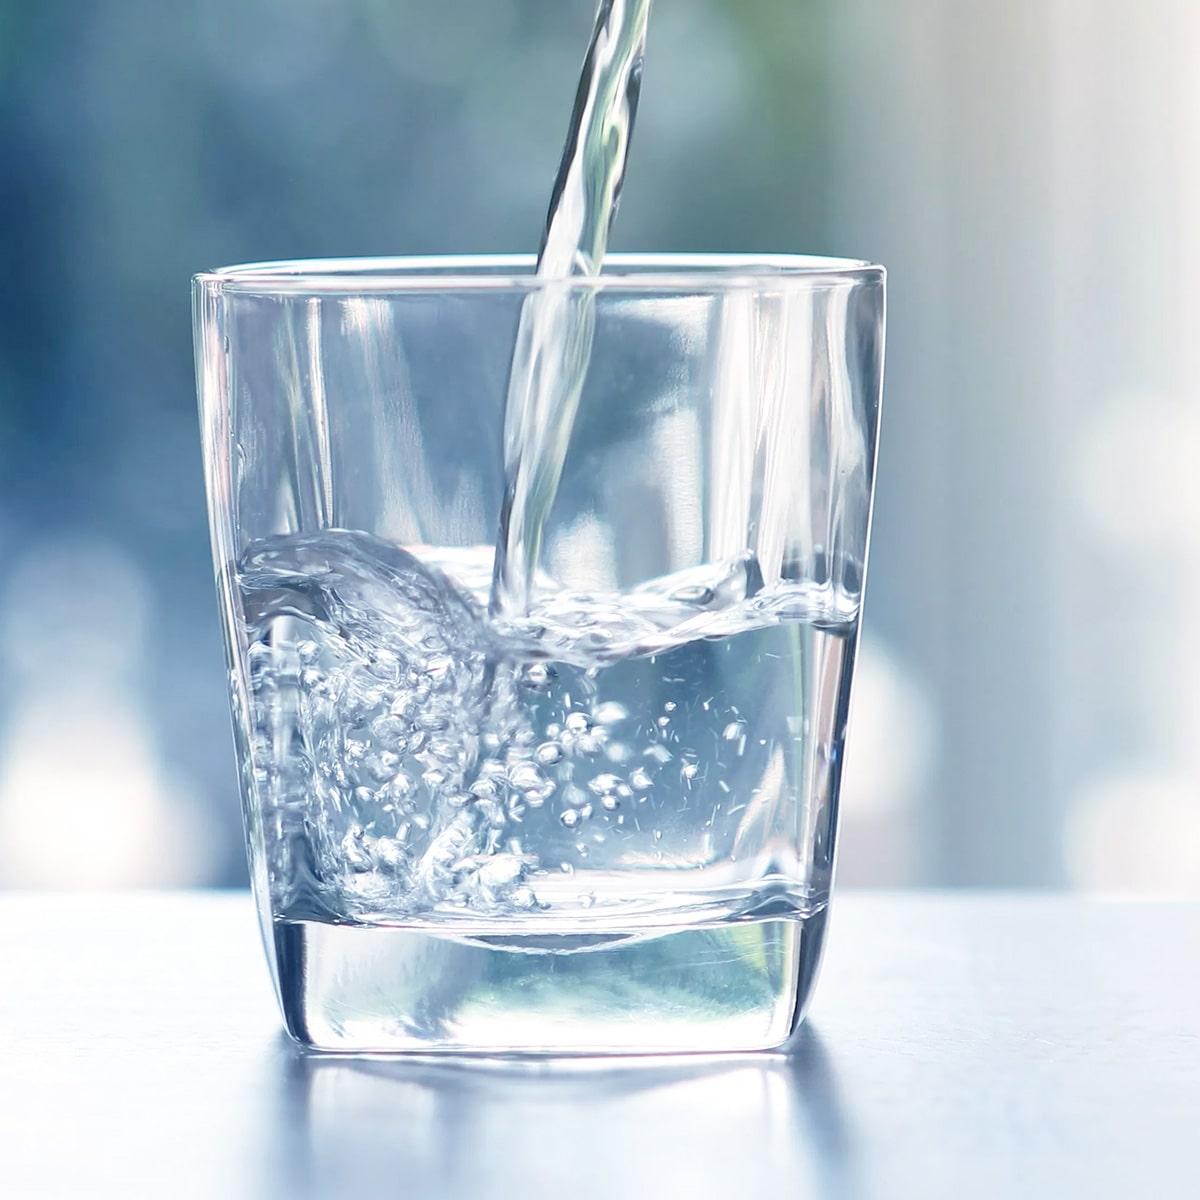 water-filtration-2